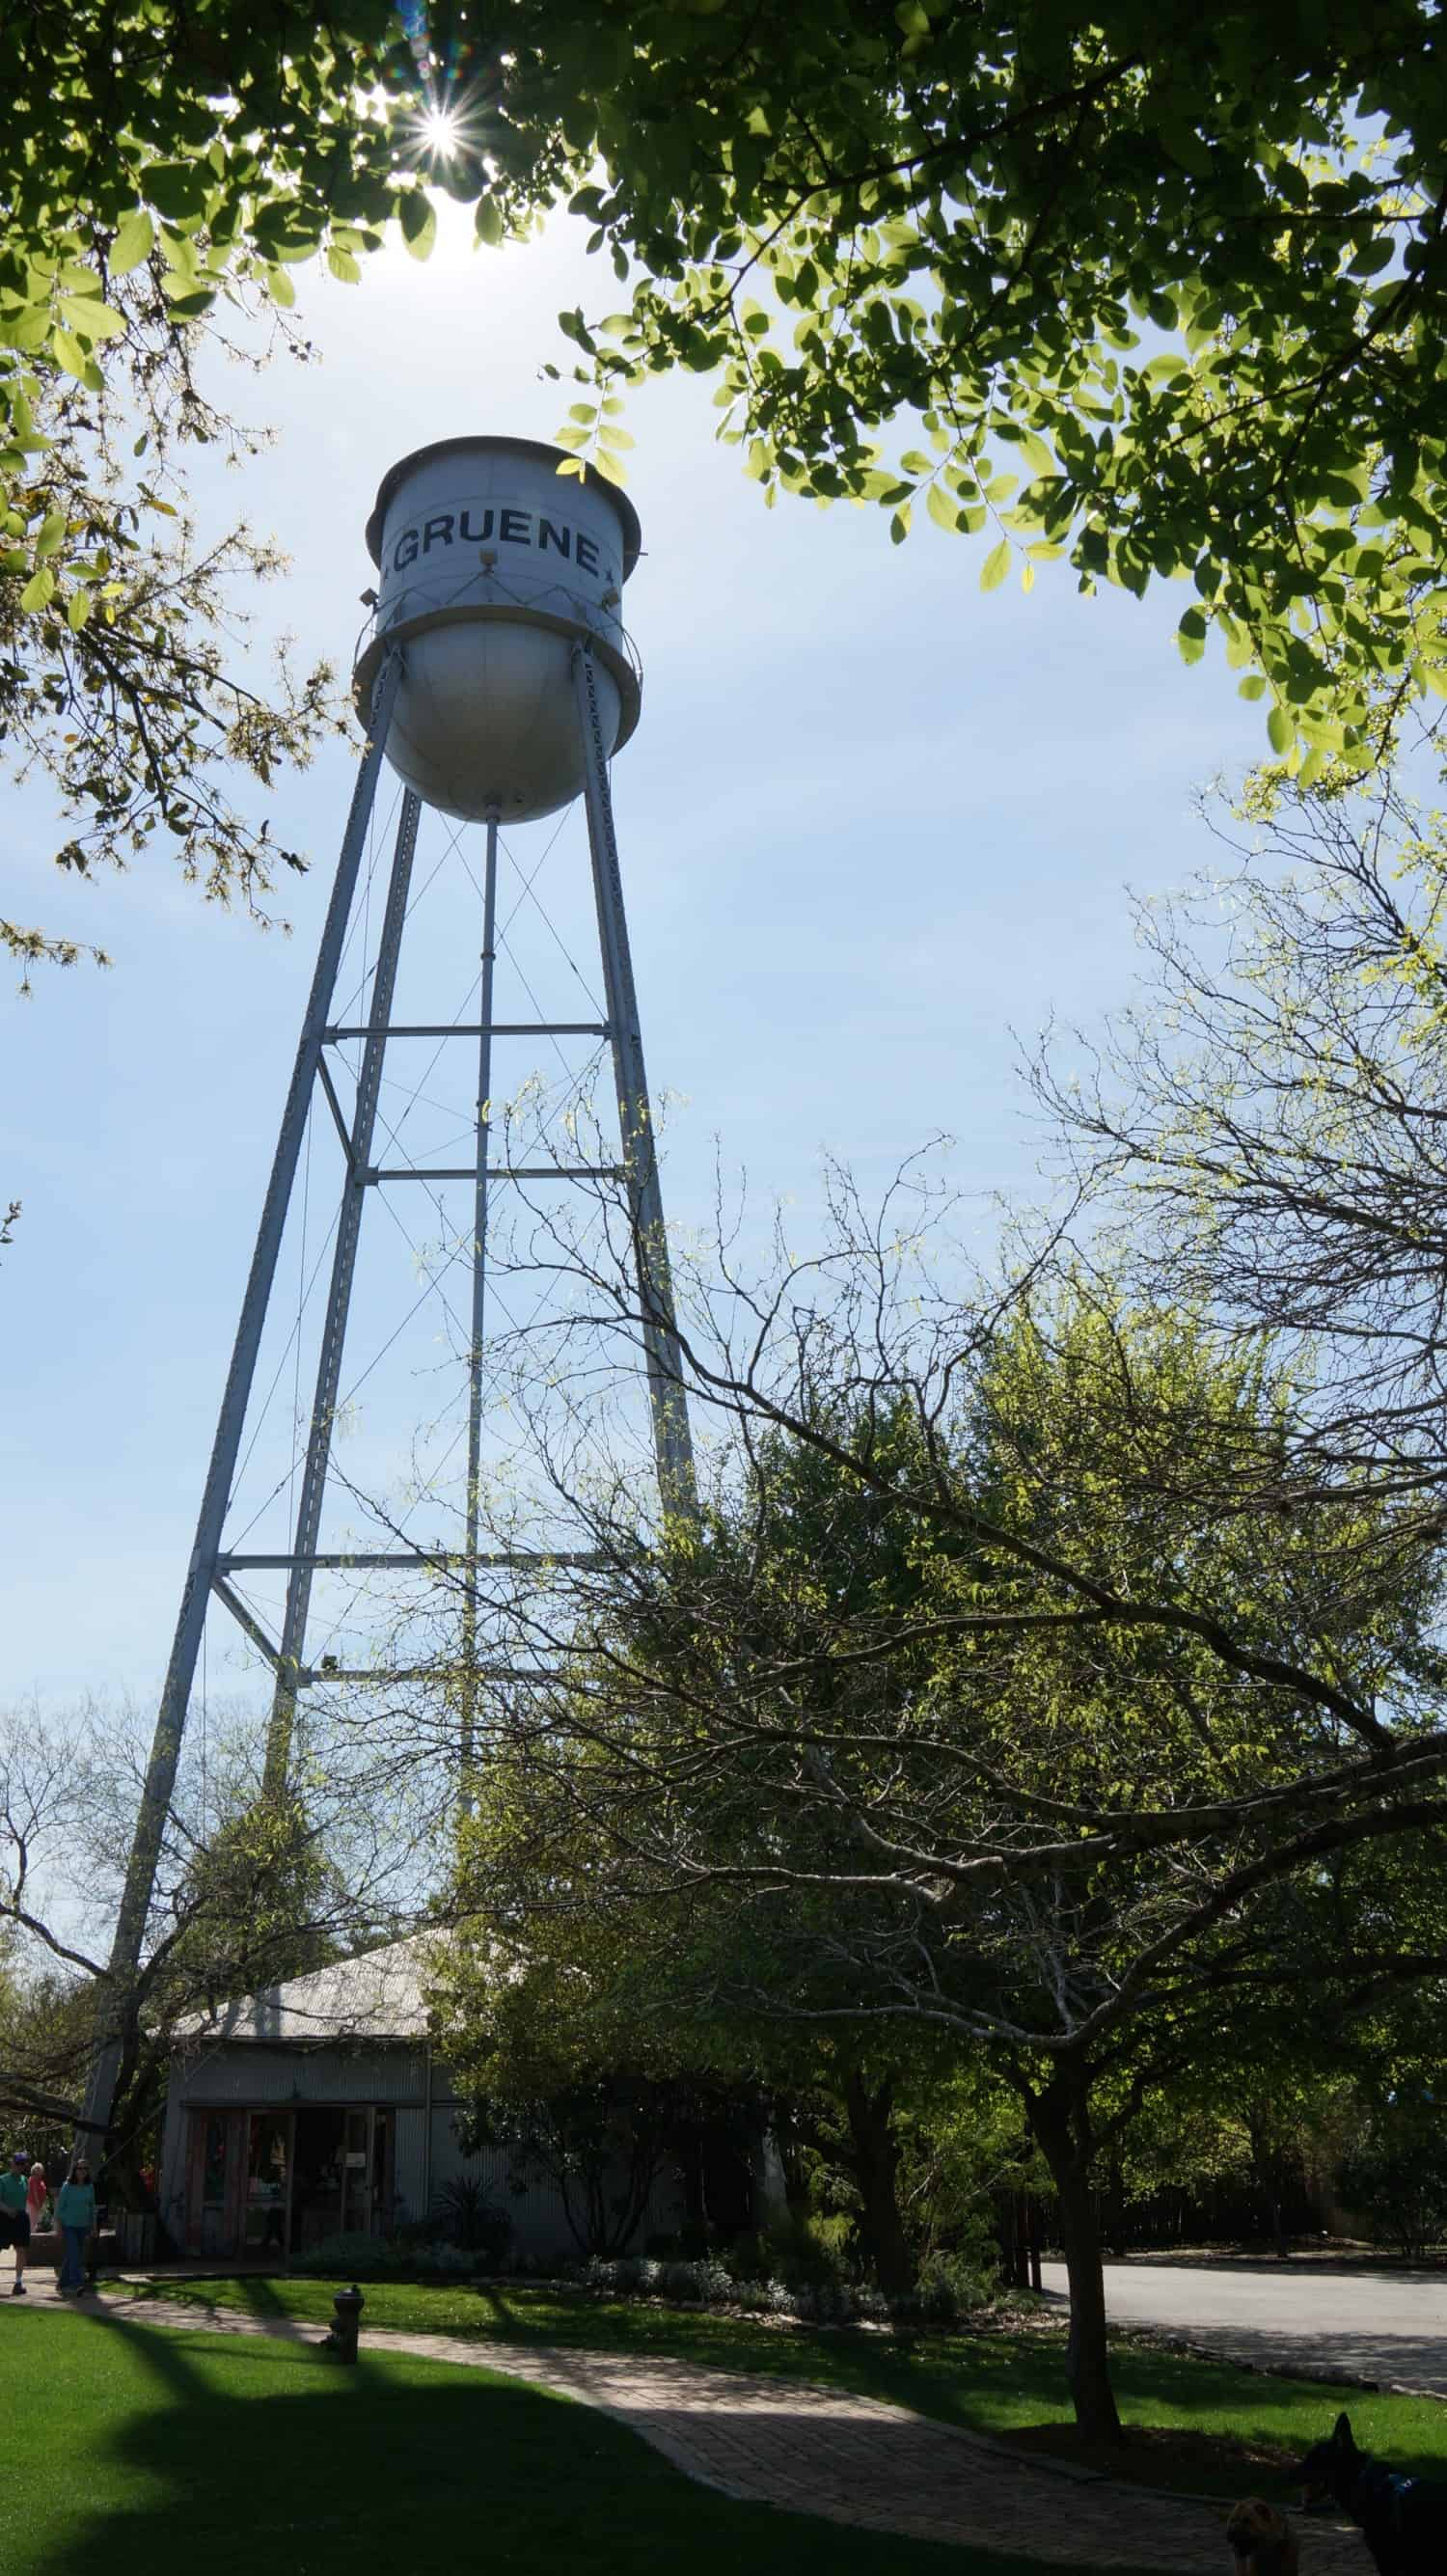 Gruene Water Tower - Gruene, TX